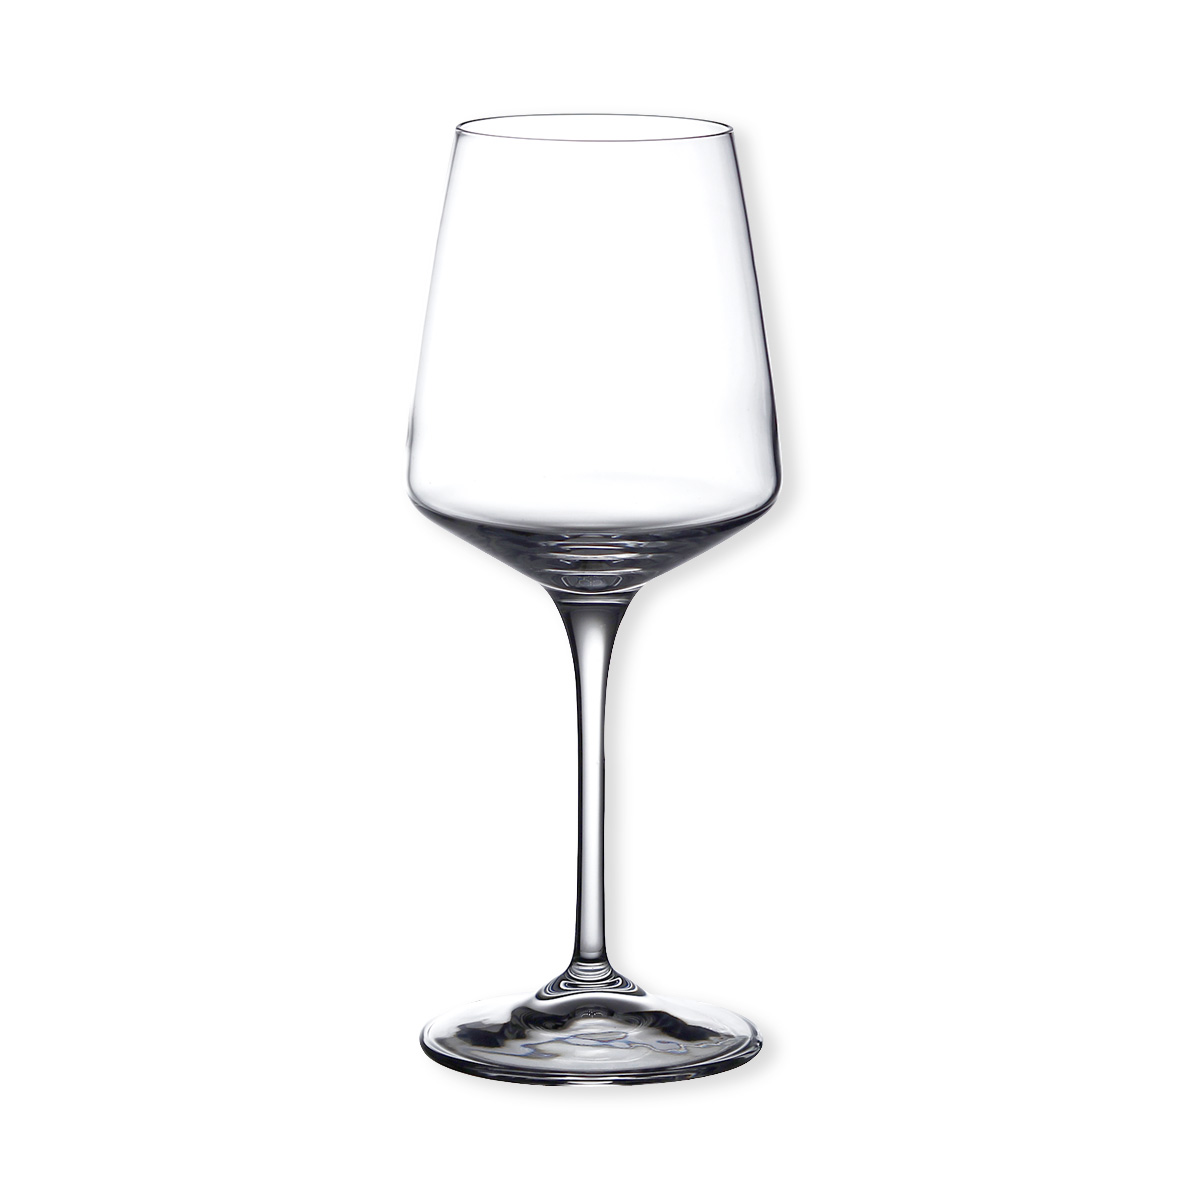 Photo De Verre De Vin Verre à Vin 46cl